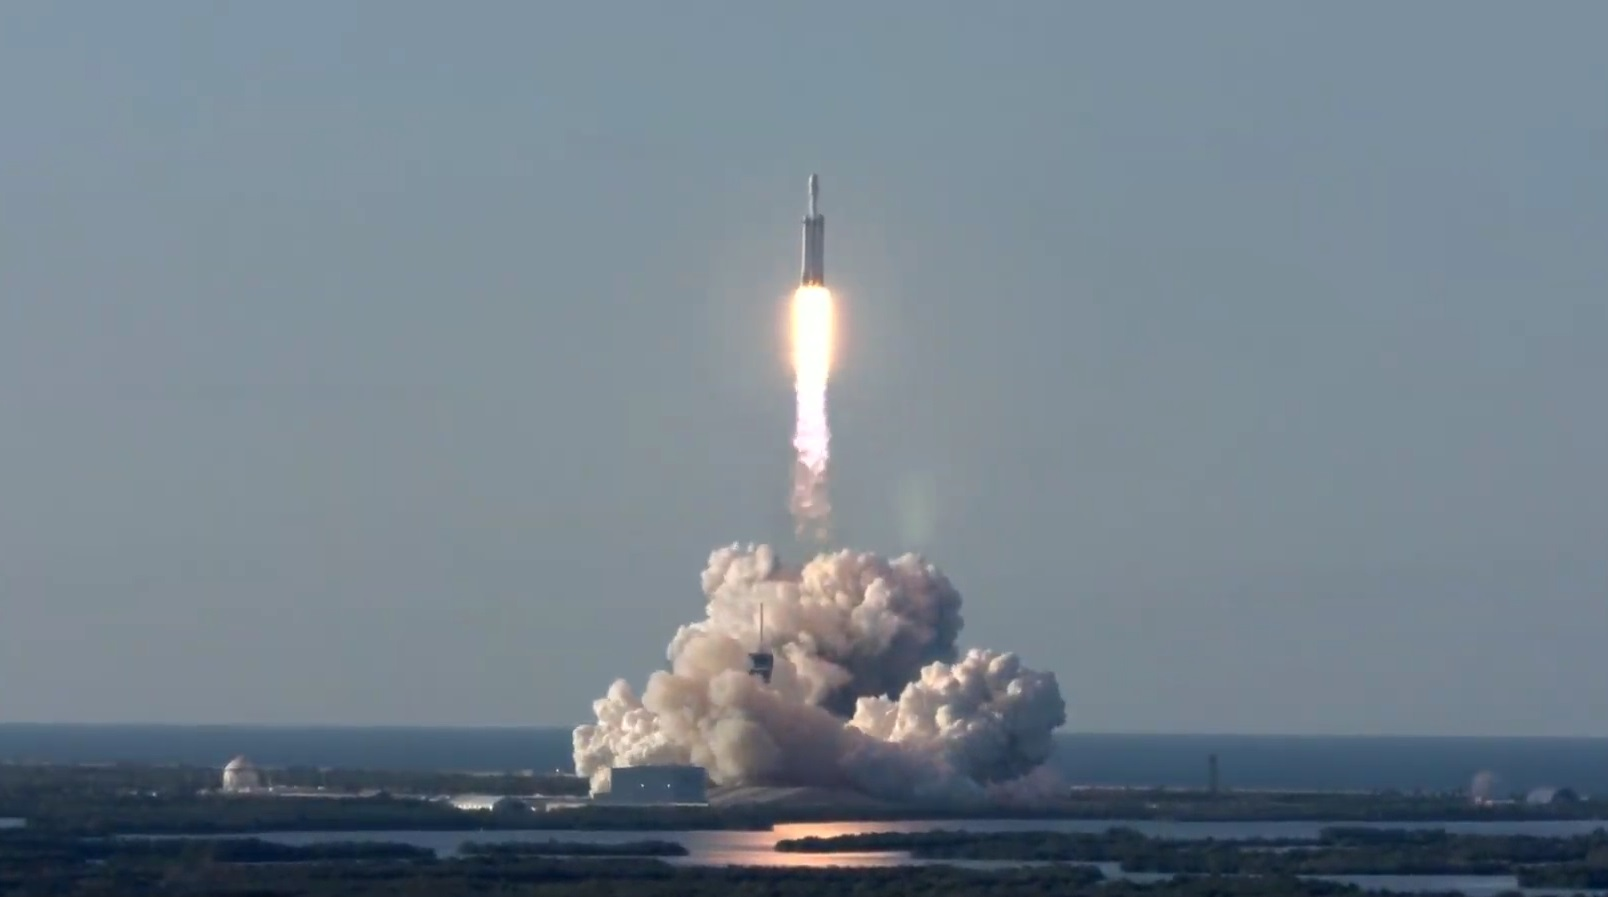 Trifecta! SpaceX launches first mission on Falcon Heavy and lands all three boosters		 		 	Devin Coldewey  			@techcrunch	  		8 months